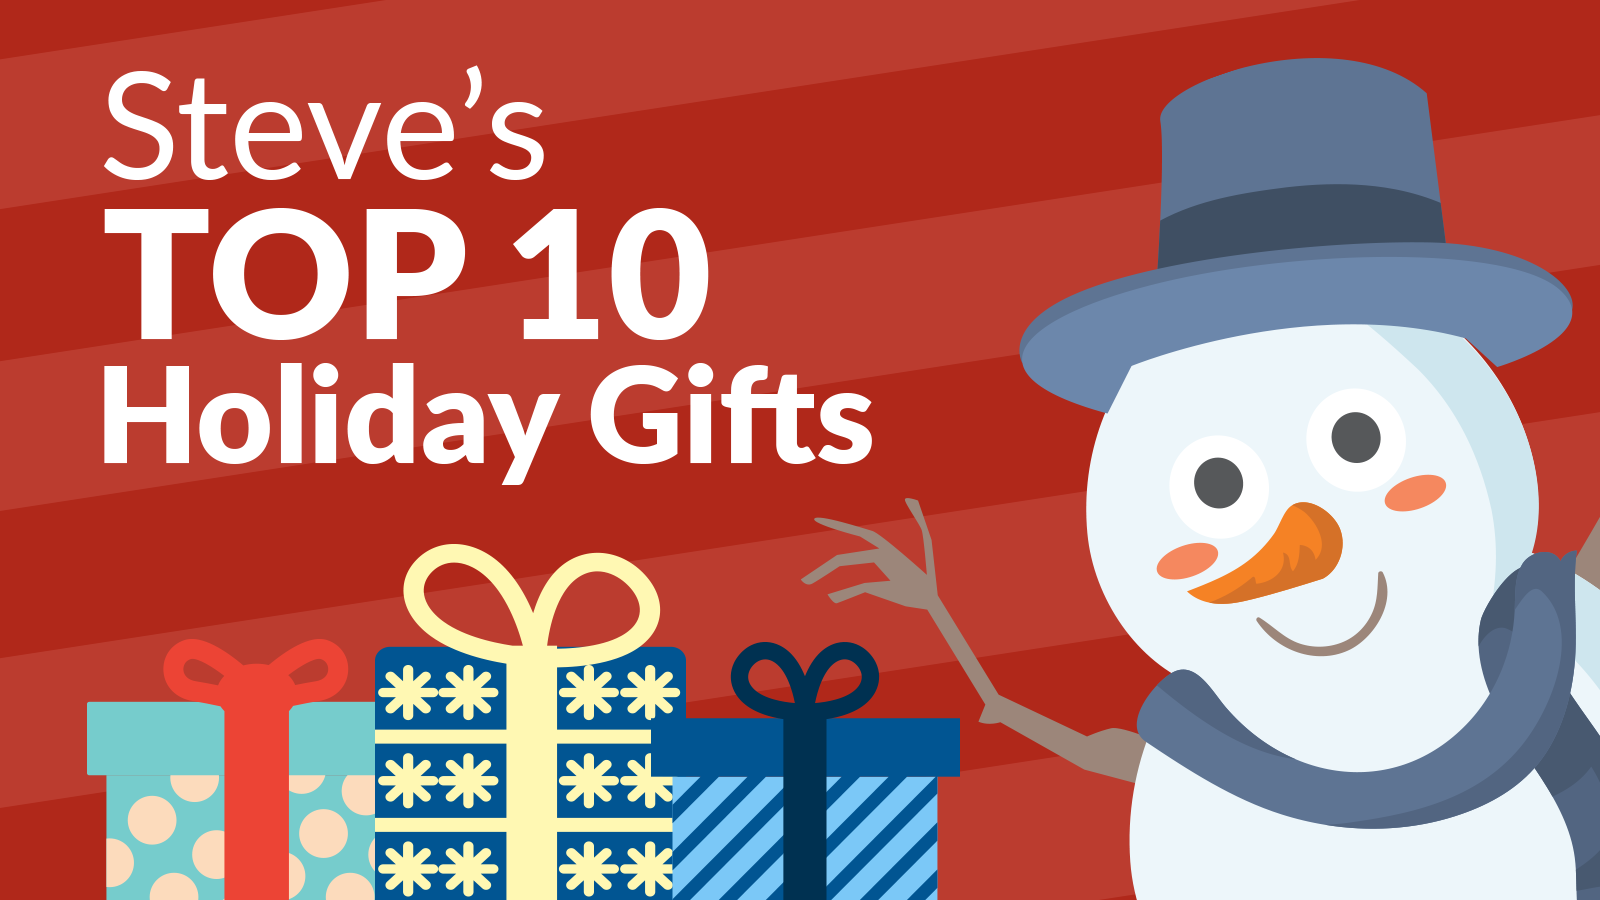 Steve's Top 10 Holiday Gift Ideas